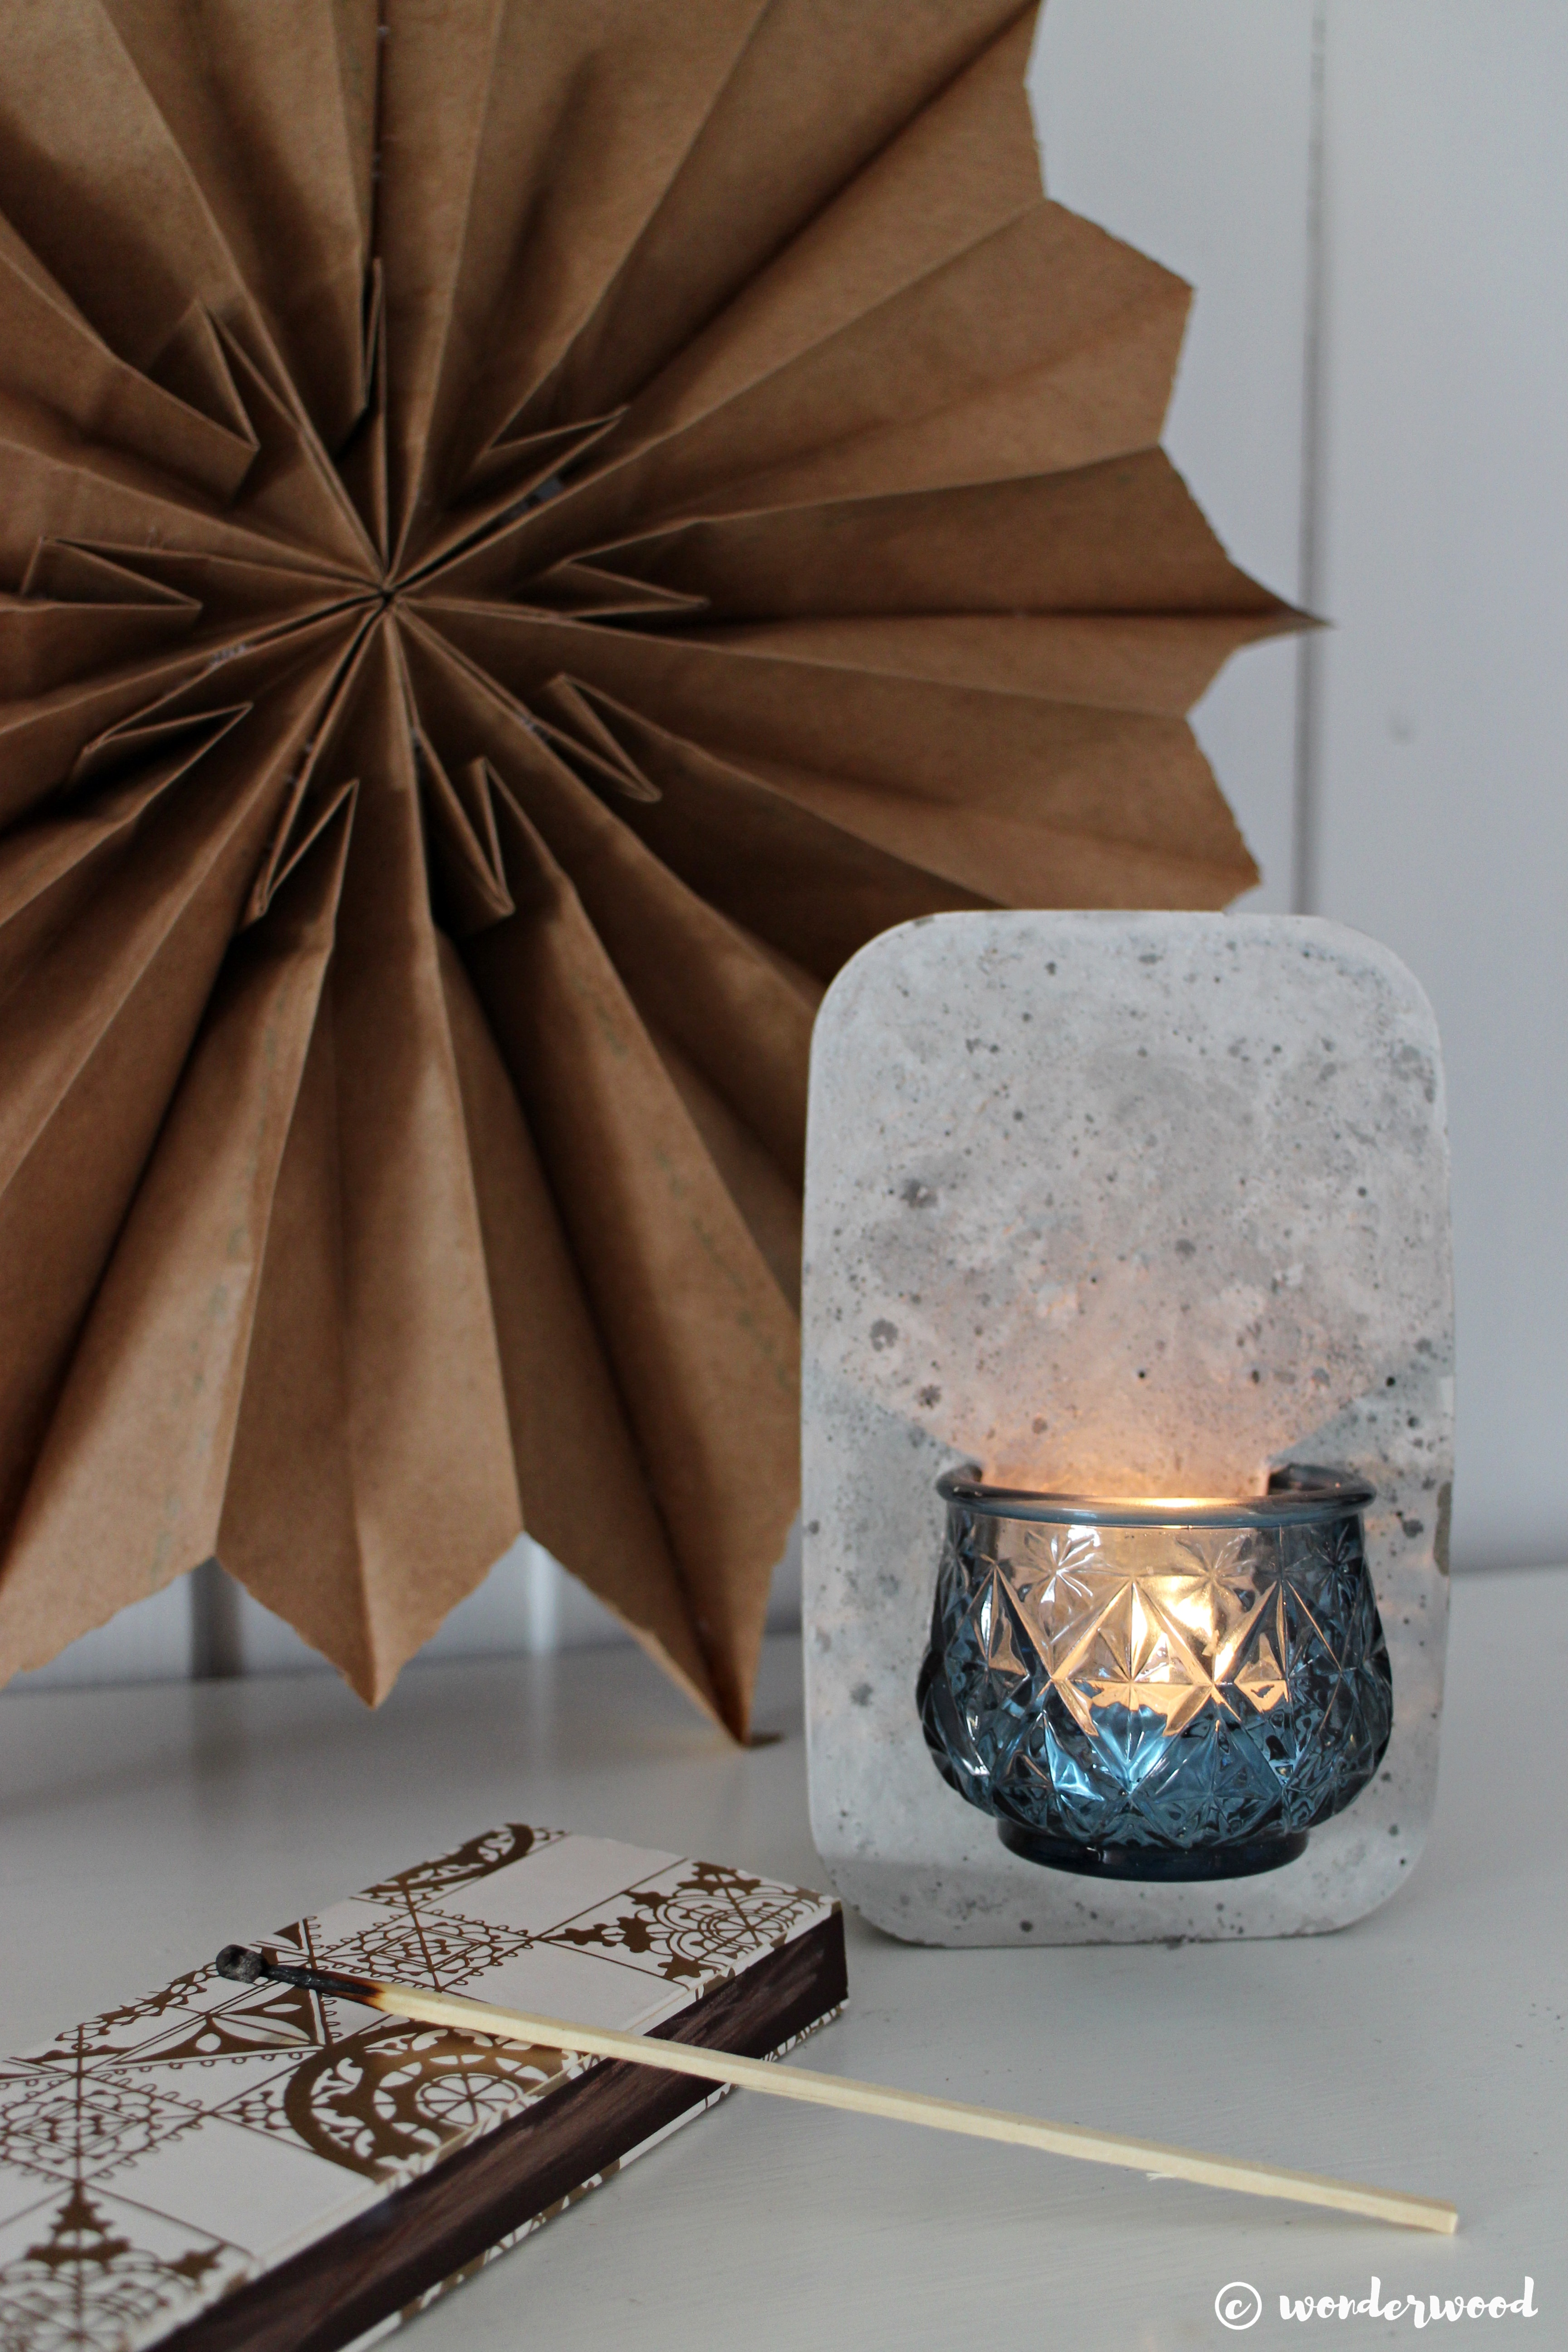 TIPS TIL HJEMMELAGDE JULEGAVER 4: diy vegglysestake i betong // HOMEMADE CHRISTMAS GIFT IDEAS 4: diy concrete wall candle holder